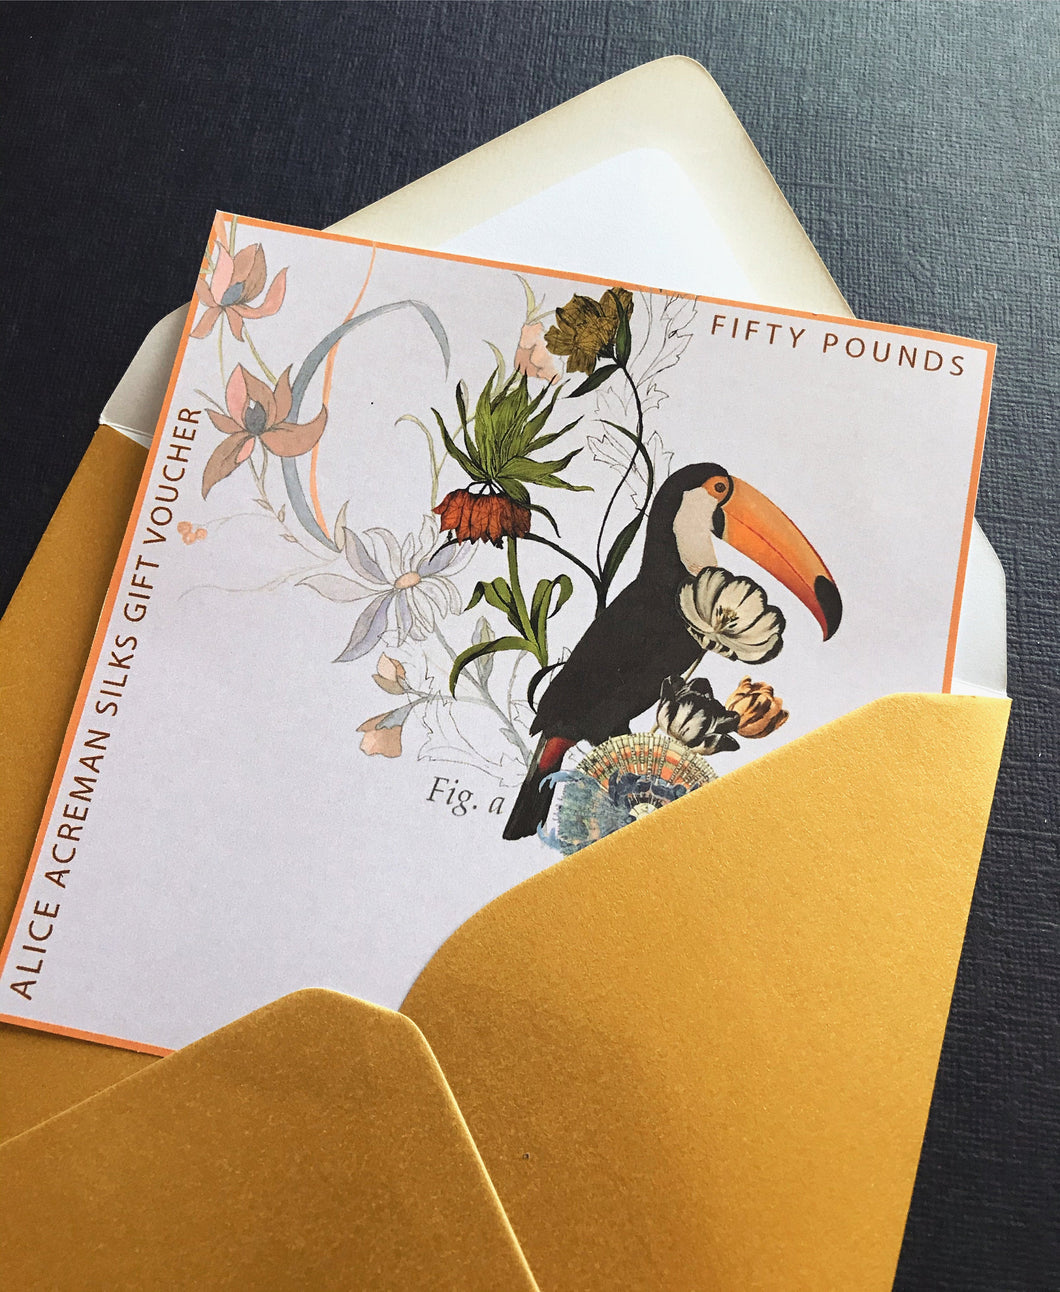 Alice Acreman silks gift voucher to the value of 25, 50 and 100 pounds with illustration